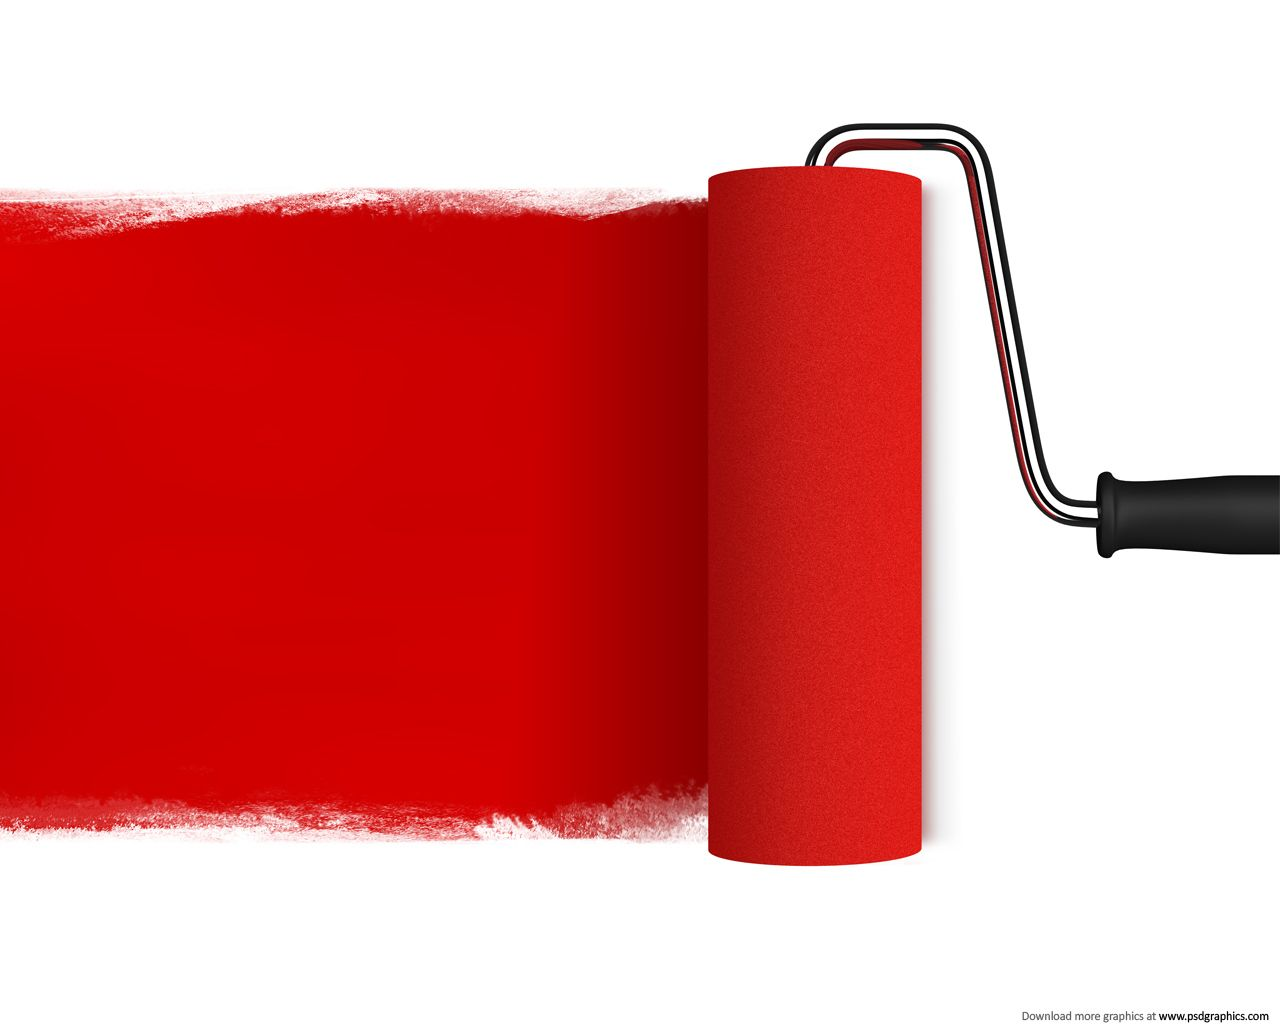 Red Paint Colors Red Color  Medium Size Preview 1280X1024Px Red Paint Roller